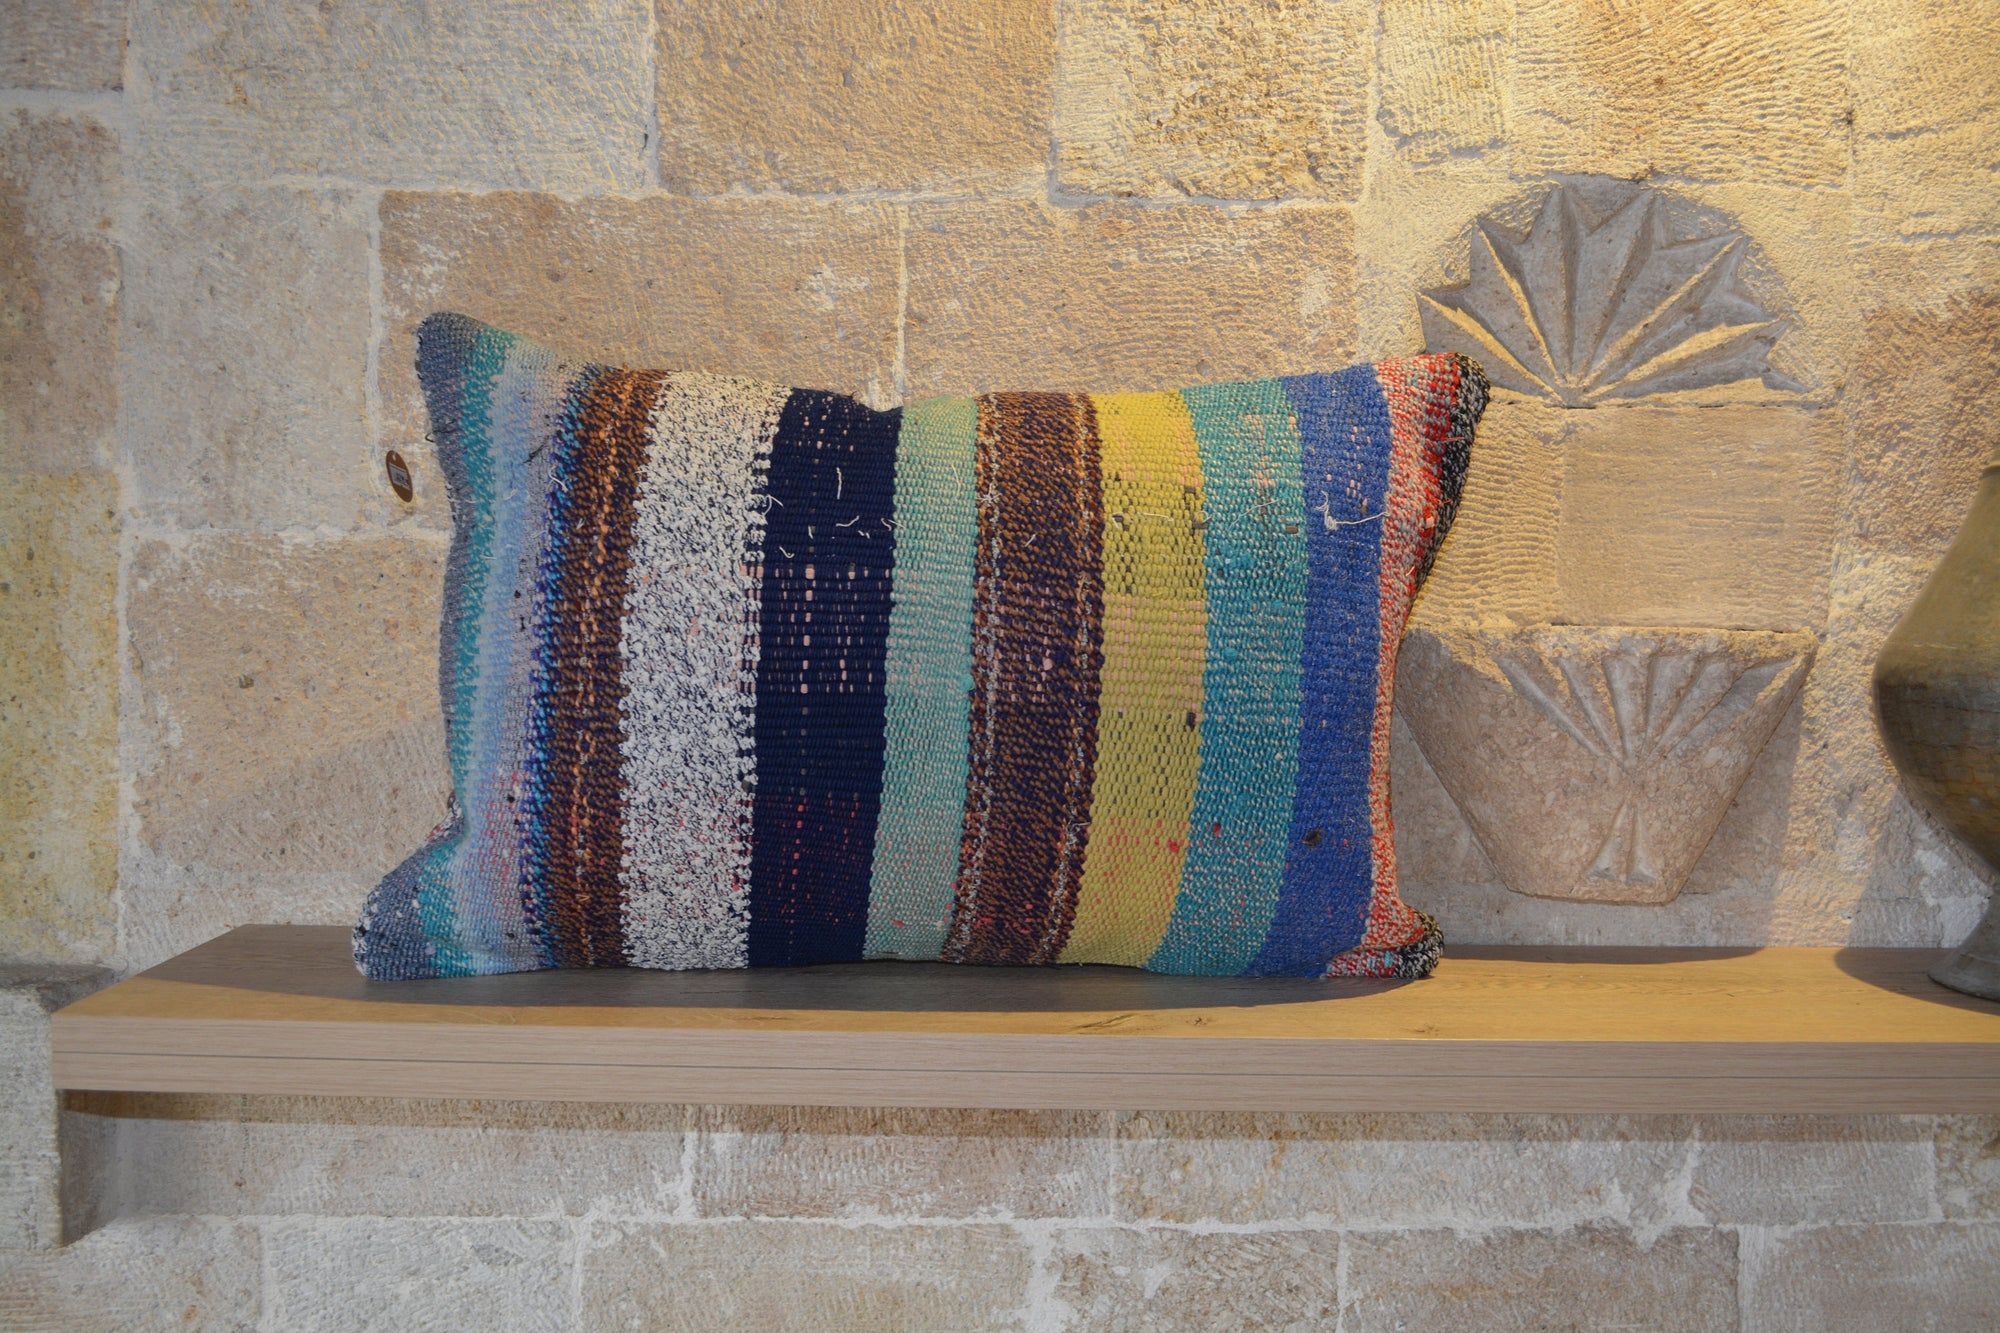 "Outdoor Pillows, Large Pillow Shamback Pillow, Kilim Pillow, Kilim Cushions Sale, Kilim Fabric, 40x60 Pillow,         16""x24"" - EA215"